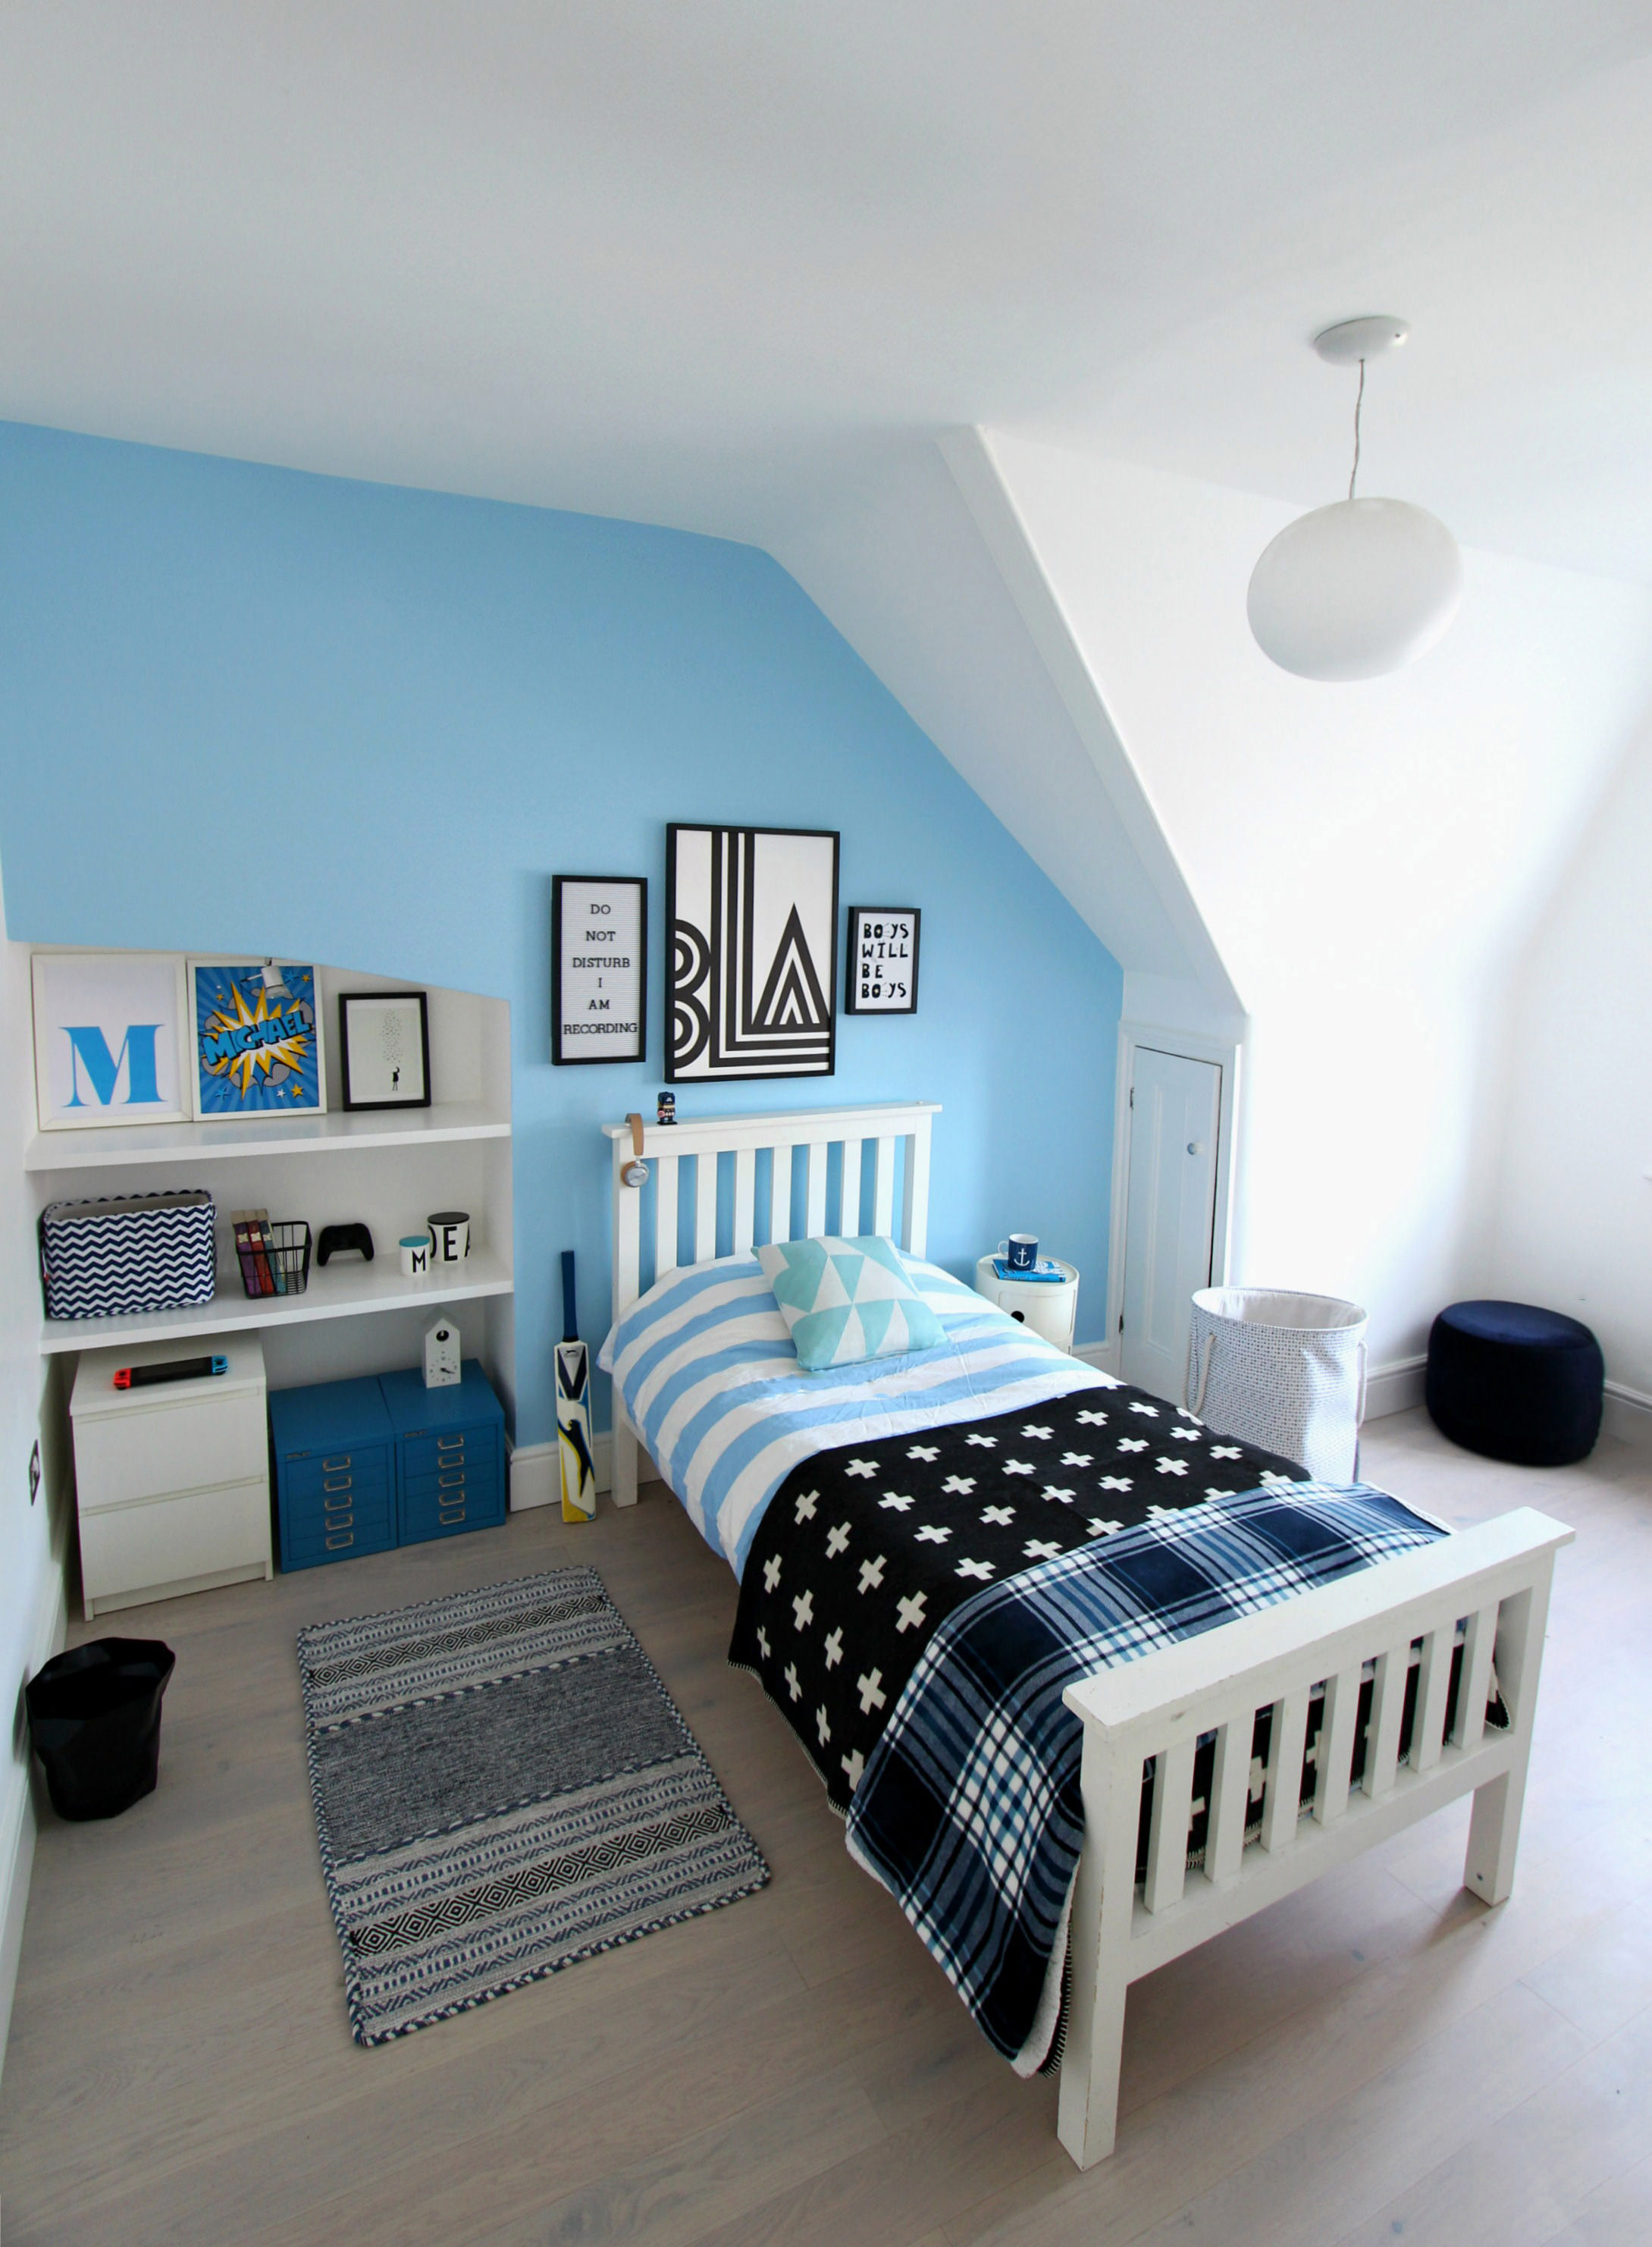 Teen Bedroom Ideas Littlebigbell Teen Bedroom Ideas In Blue On A Budget With Homesense